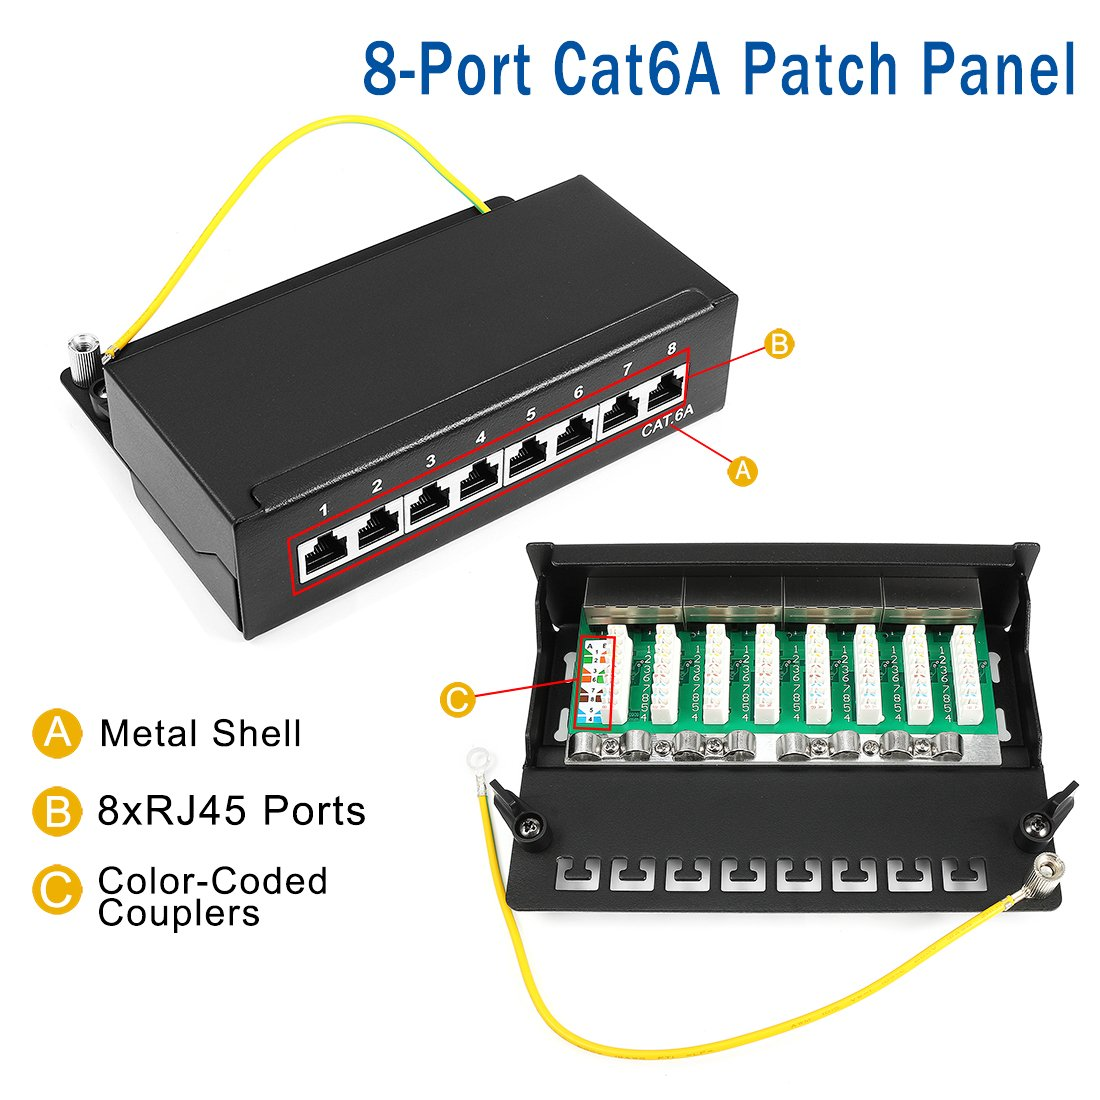 Network Patch Panel Diagram